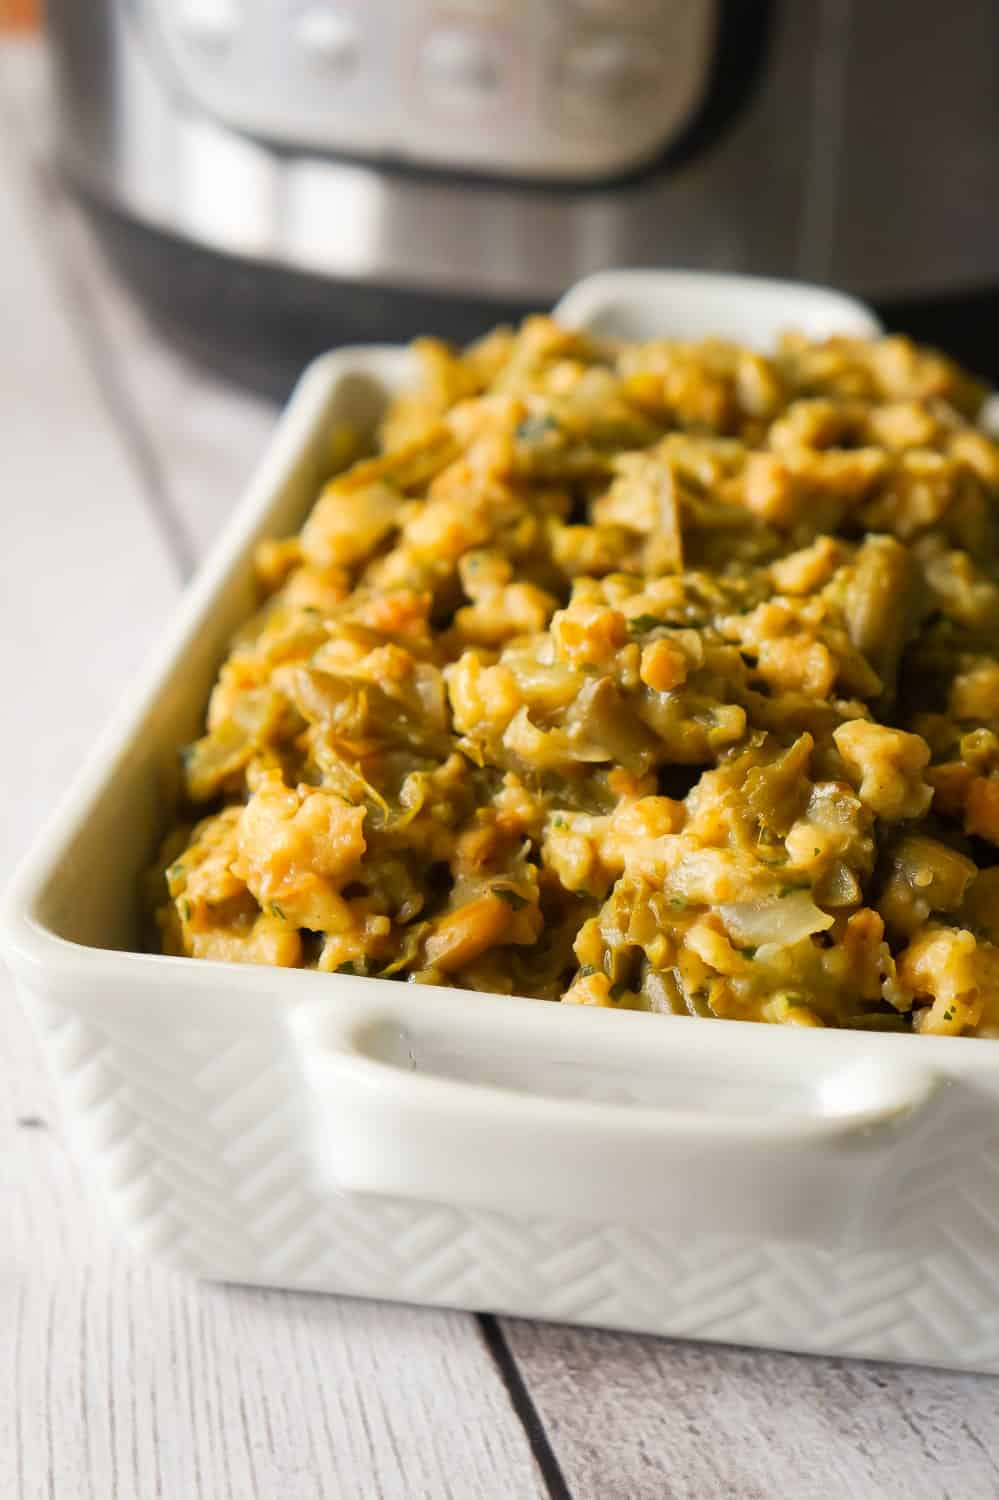 Instant Pot Green Bean Casserole with Stuffing is an easy pressure cooker side dish recipe made with cut green beans, cream of mushroom soup and Stove Top stuffing mix.